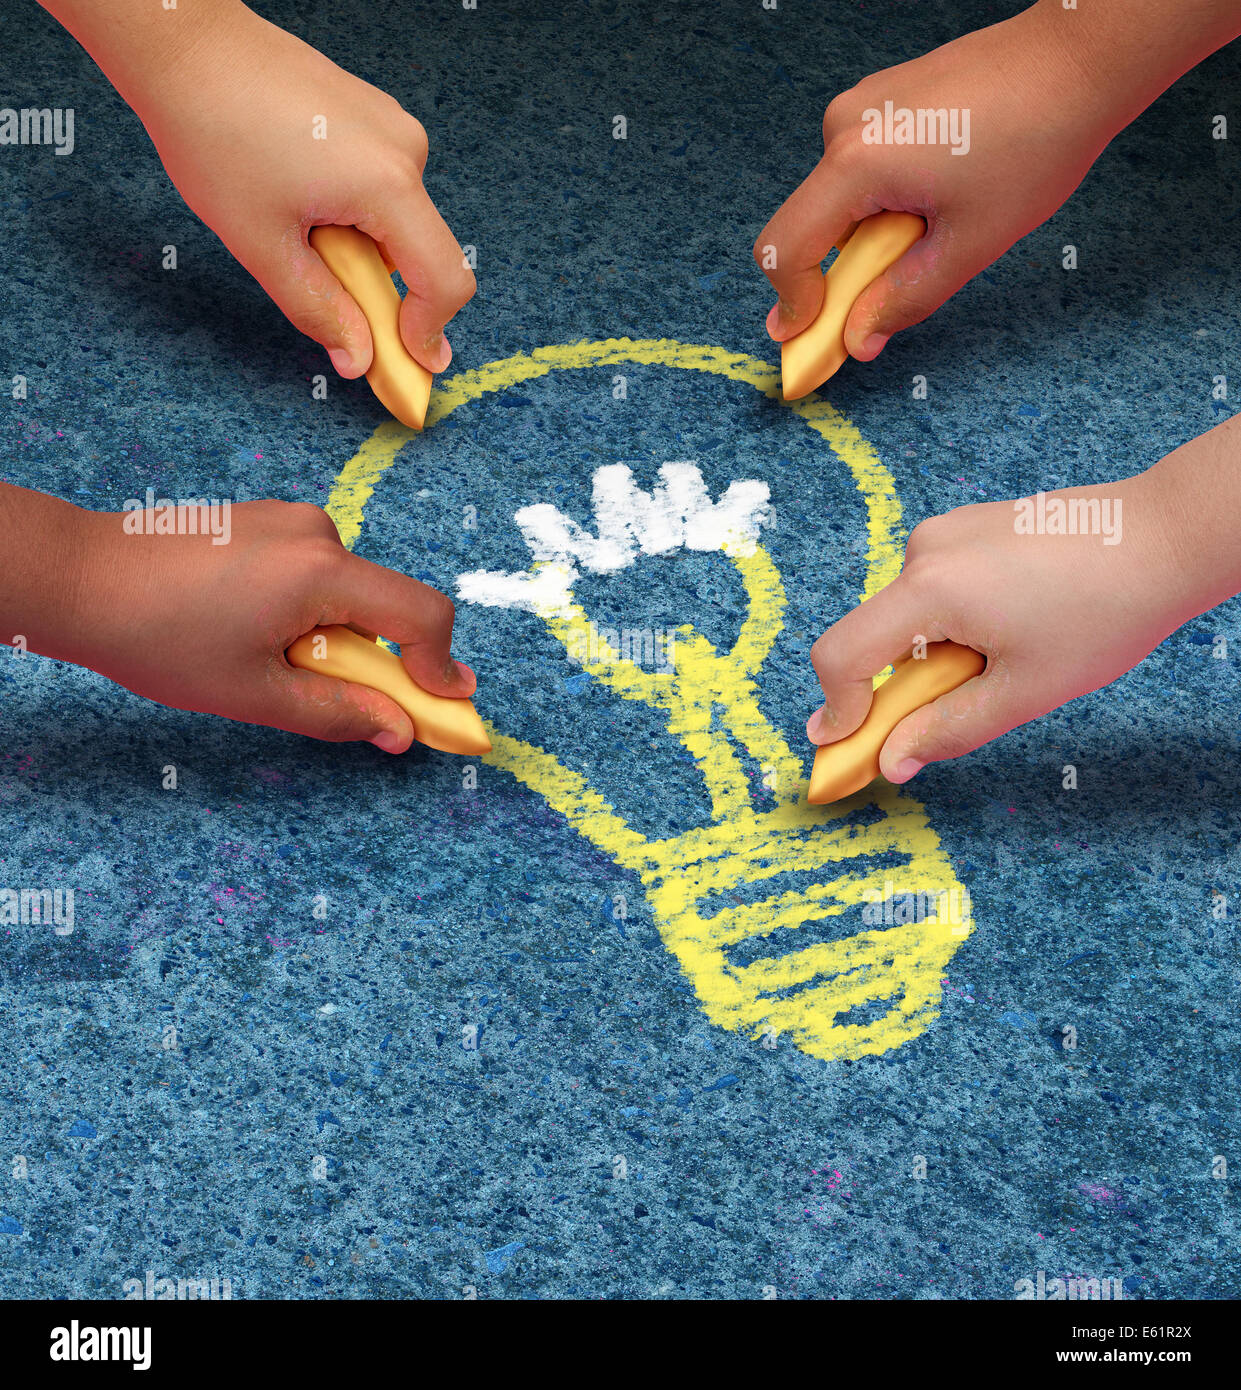 Community ideas education concept as a group of children hands holding chalk drawing a lightbulb icon on a pavement Stock Photo